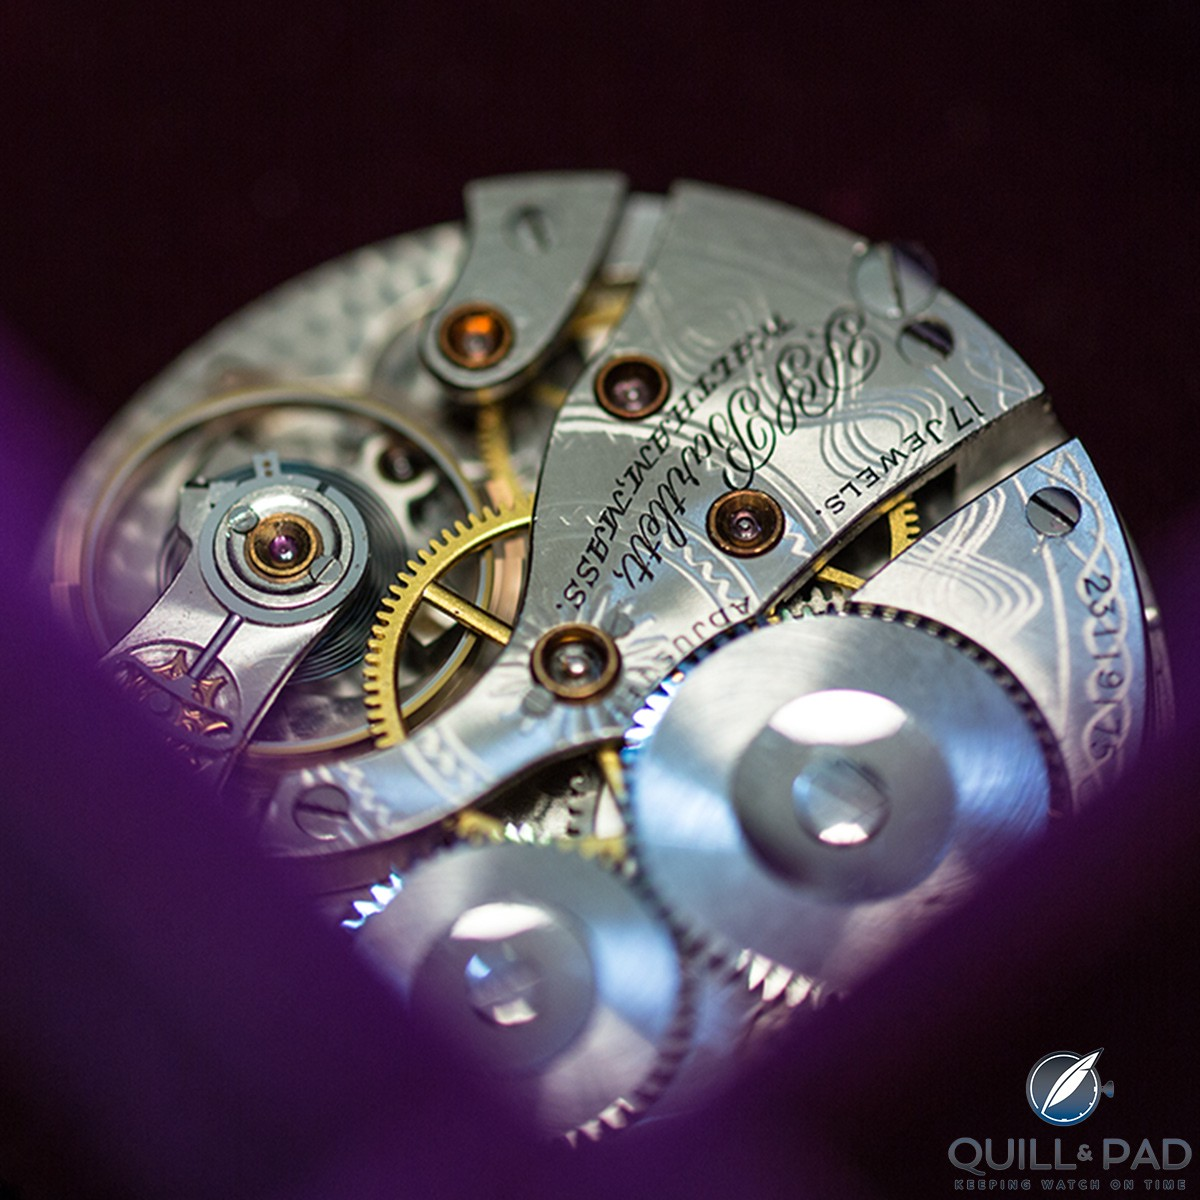 A refurbished vintage movement at the Struthers workshop